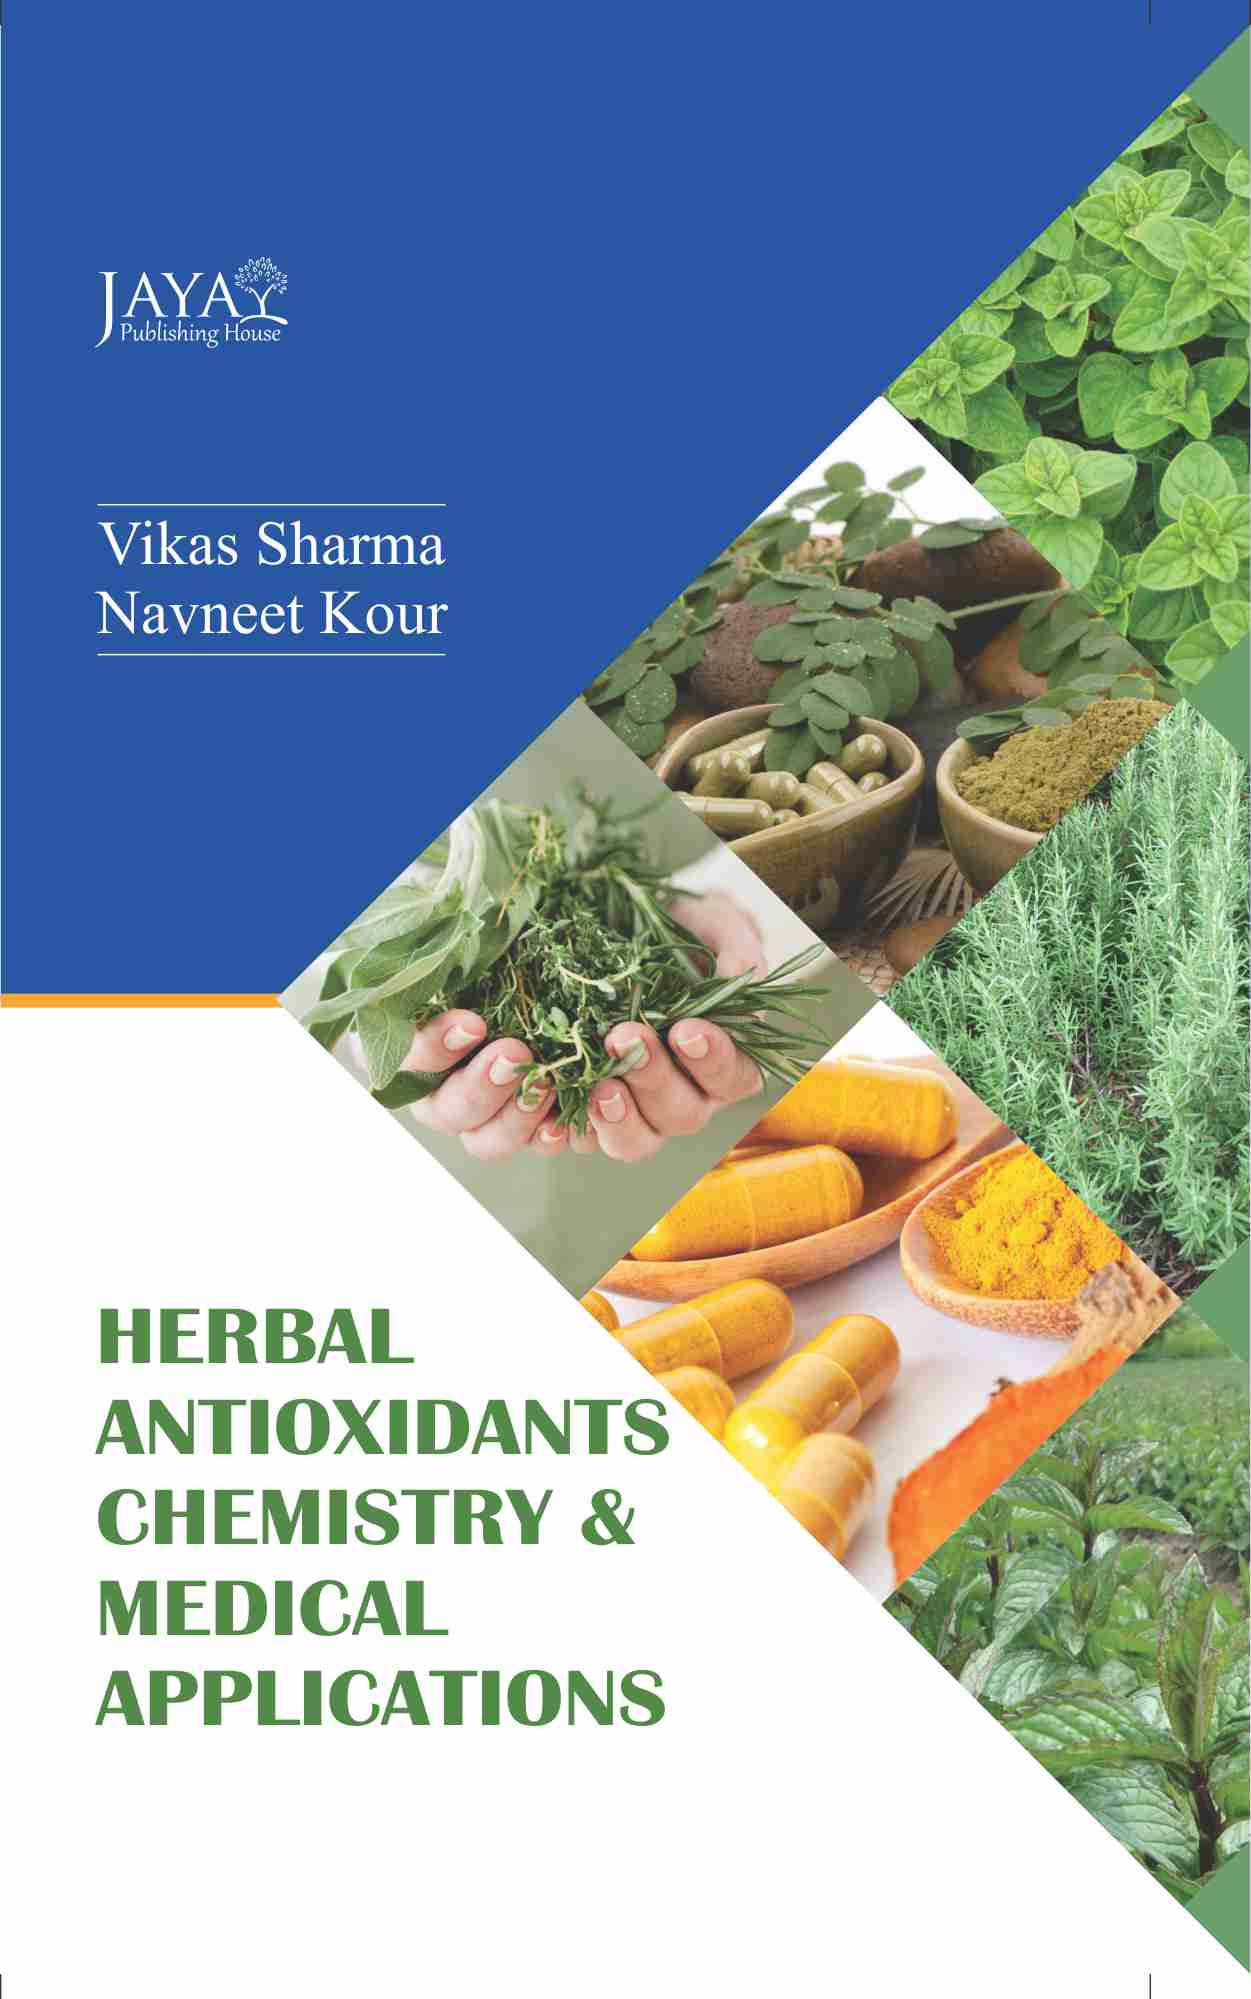 Herbal Antioxidant Chemistry & Medical Application